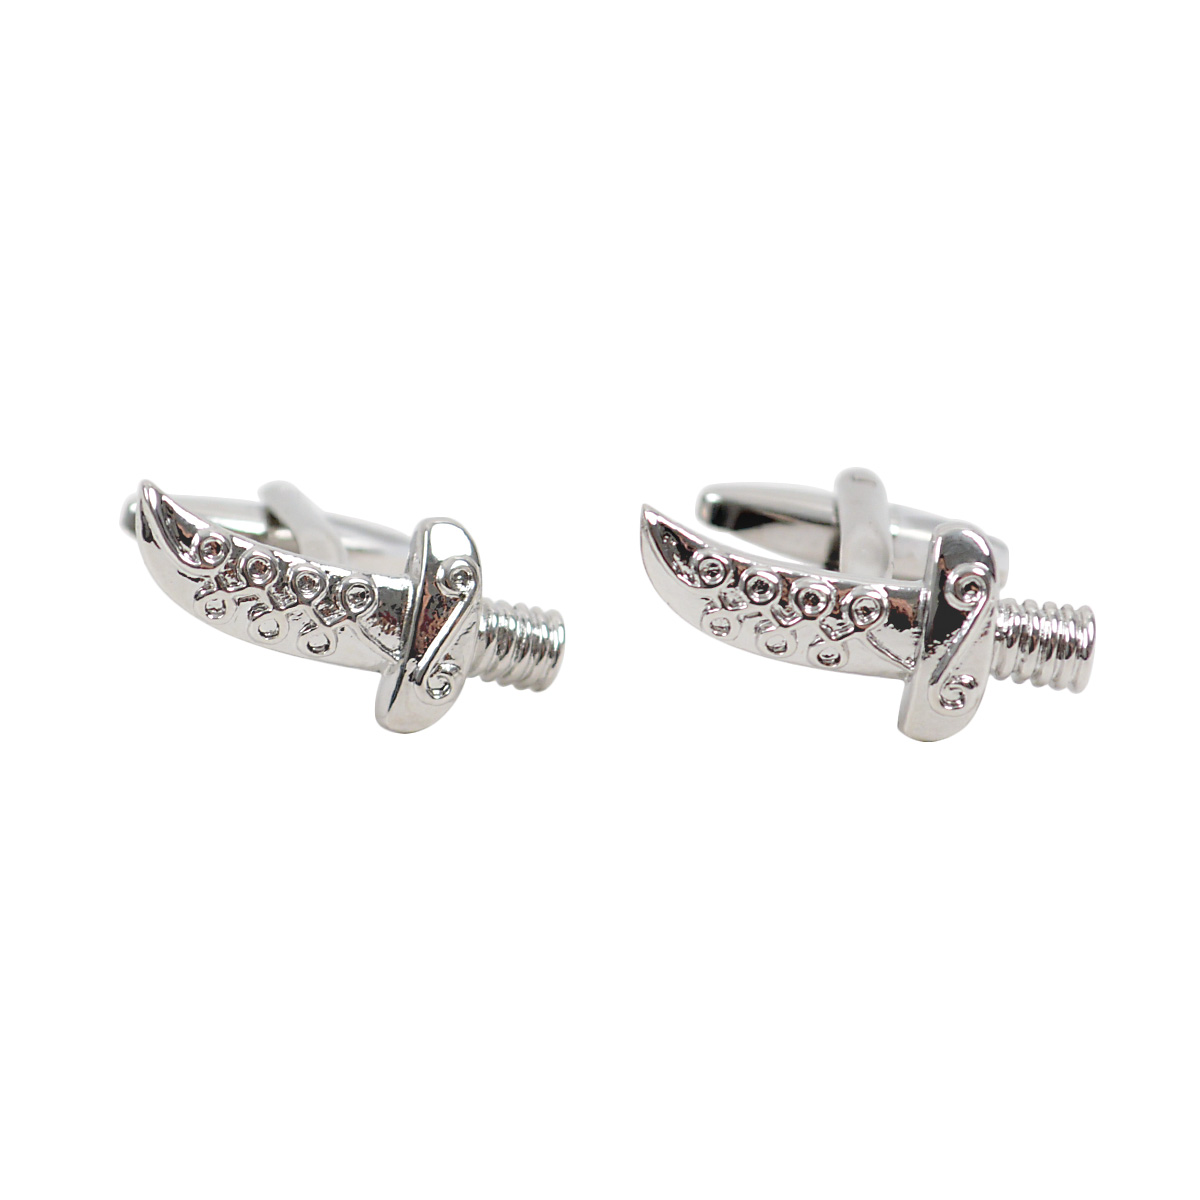 Silver Pirate DAGGER Sword Novelty Cufflink NCL1705-1